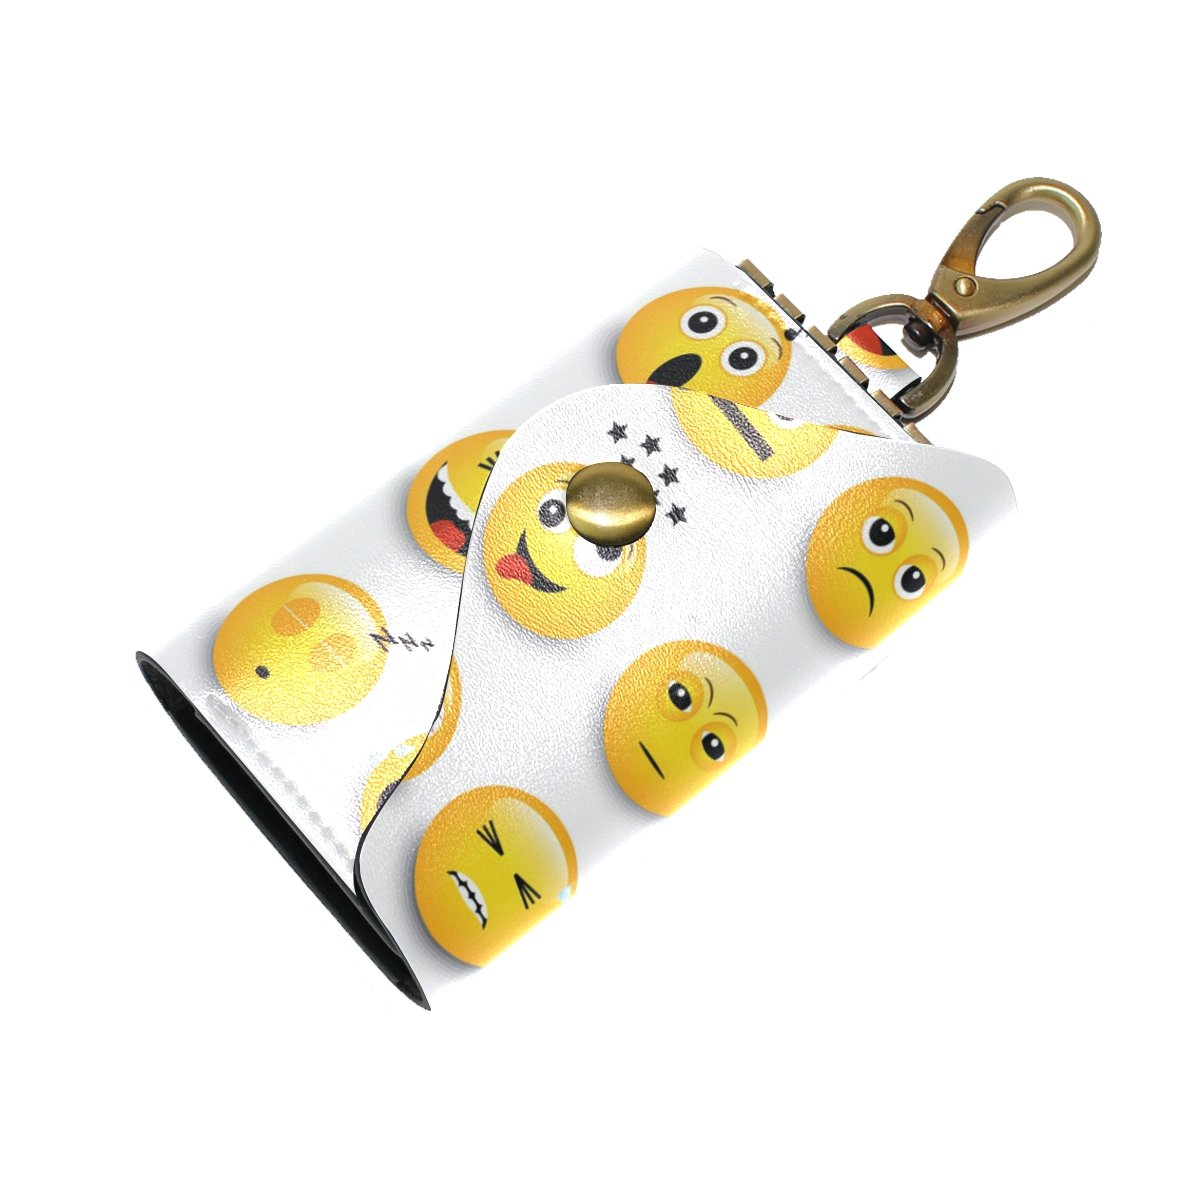 KEAKIA Yellow Emoticons Emojis Leather Key Case Wallets Tri-fold Key Holder Keychains with 6 Hooks 2 Slot Snap Closure for Men Women